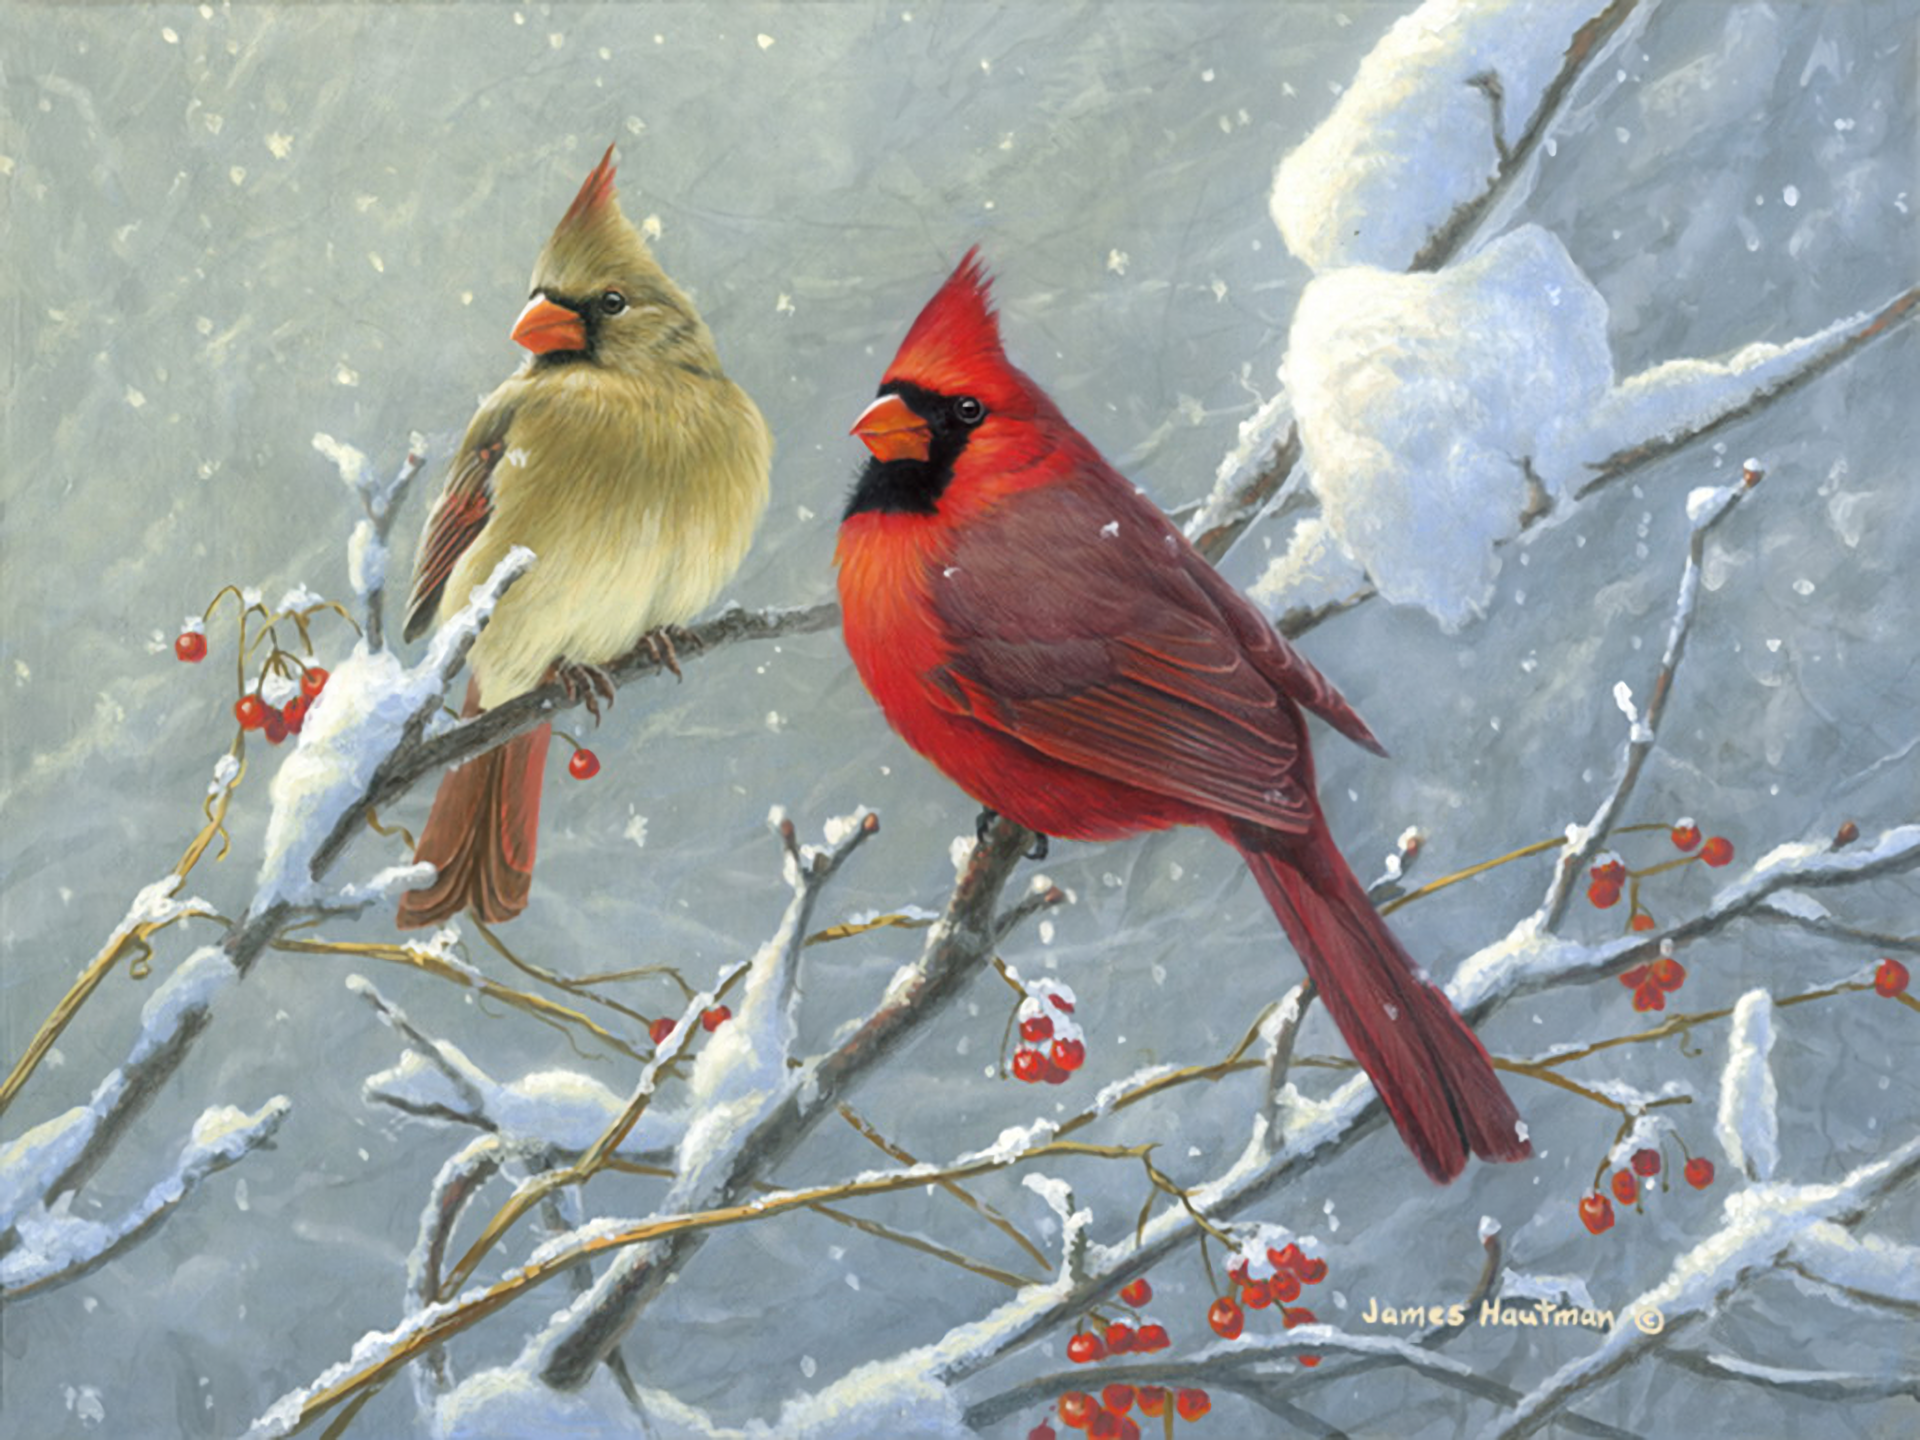 Cardinals on winter branch hd wallpaper background image - Pictures of cardinals in snow ...